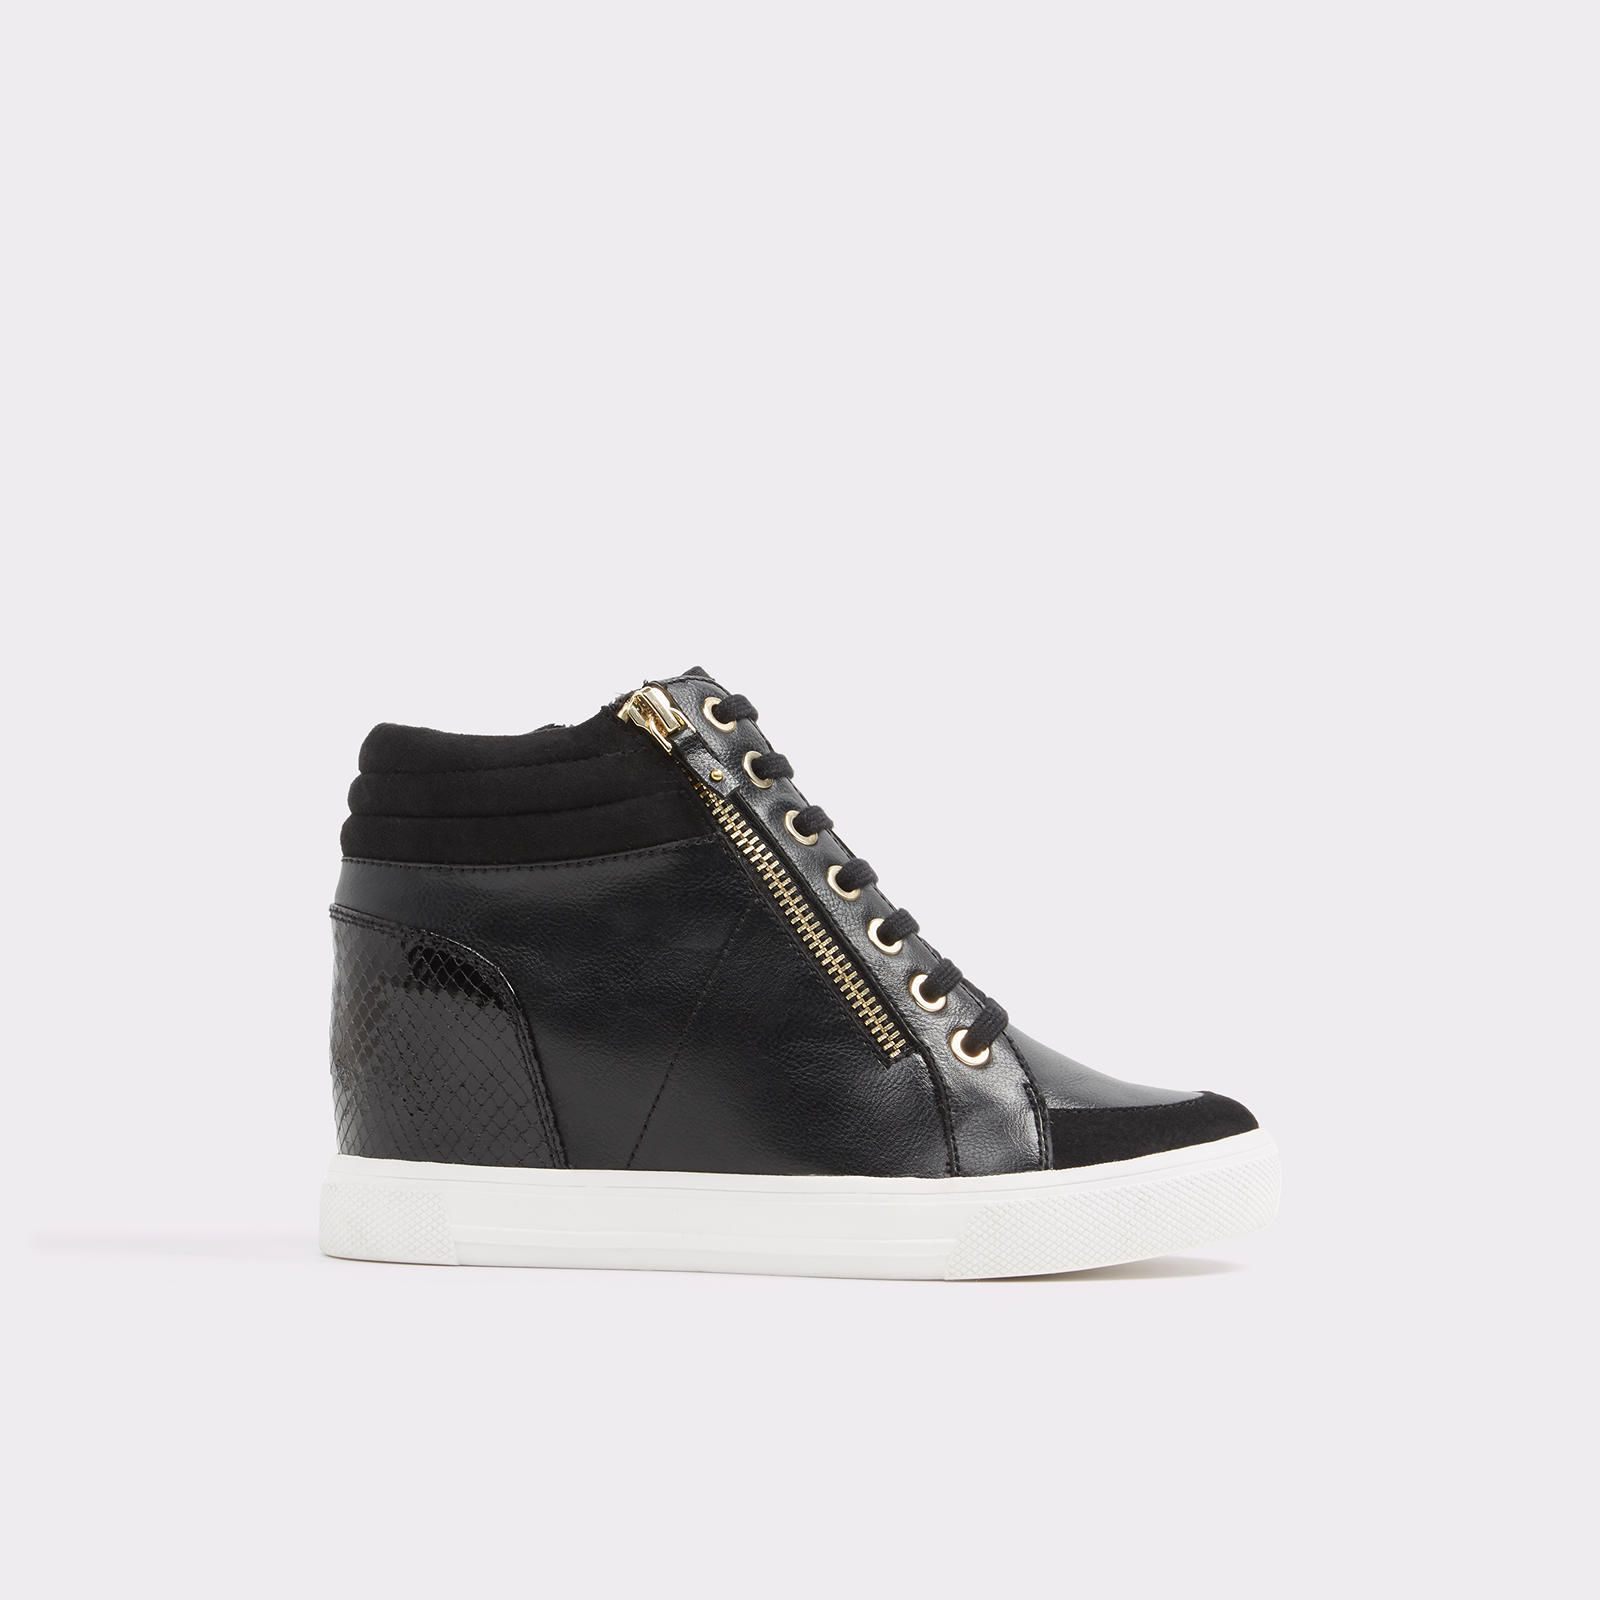 ba0313d771c7 Kaia black by Aldo Shoes - Main Black Wedge Sneakers